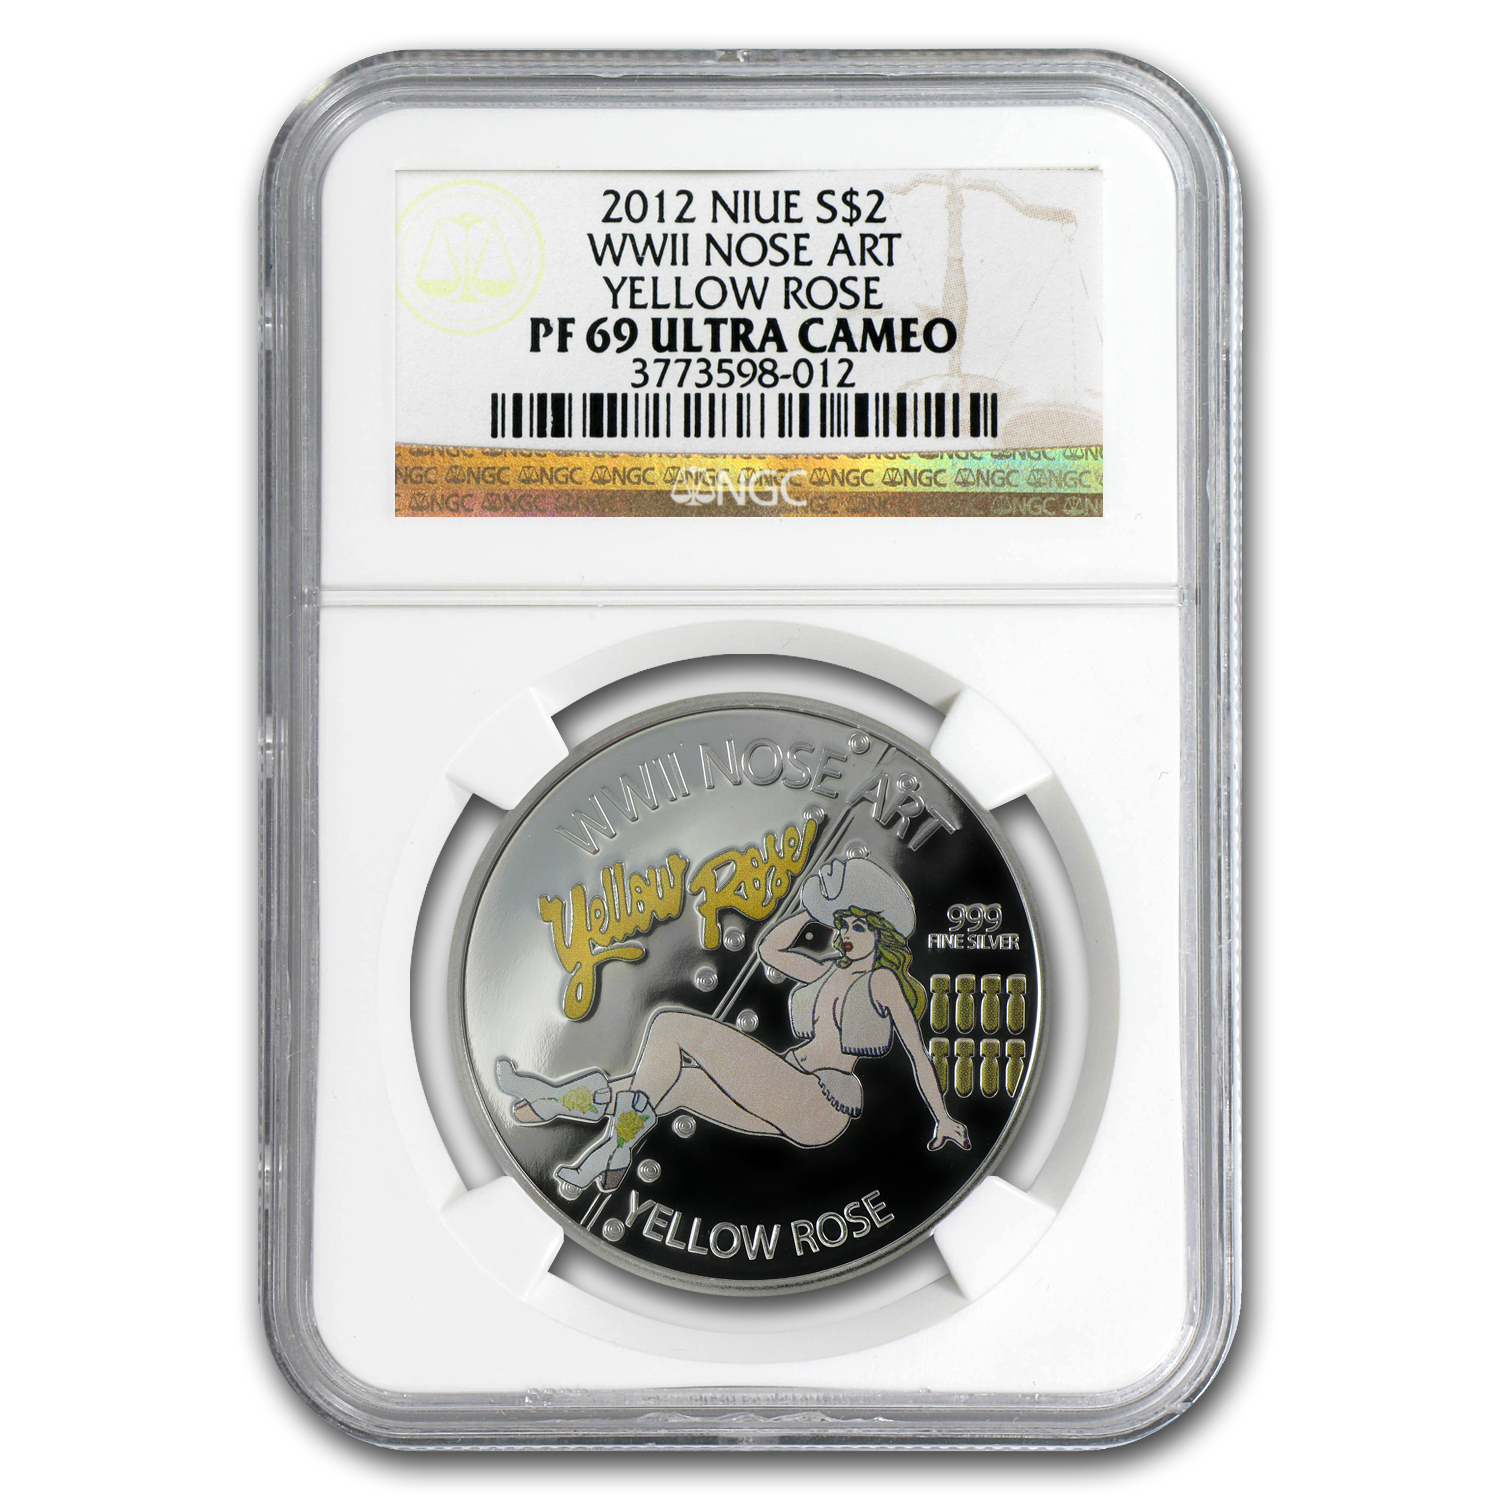 2012 Niue WWII Nose Art Yellow Rose PF-69 NGC